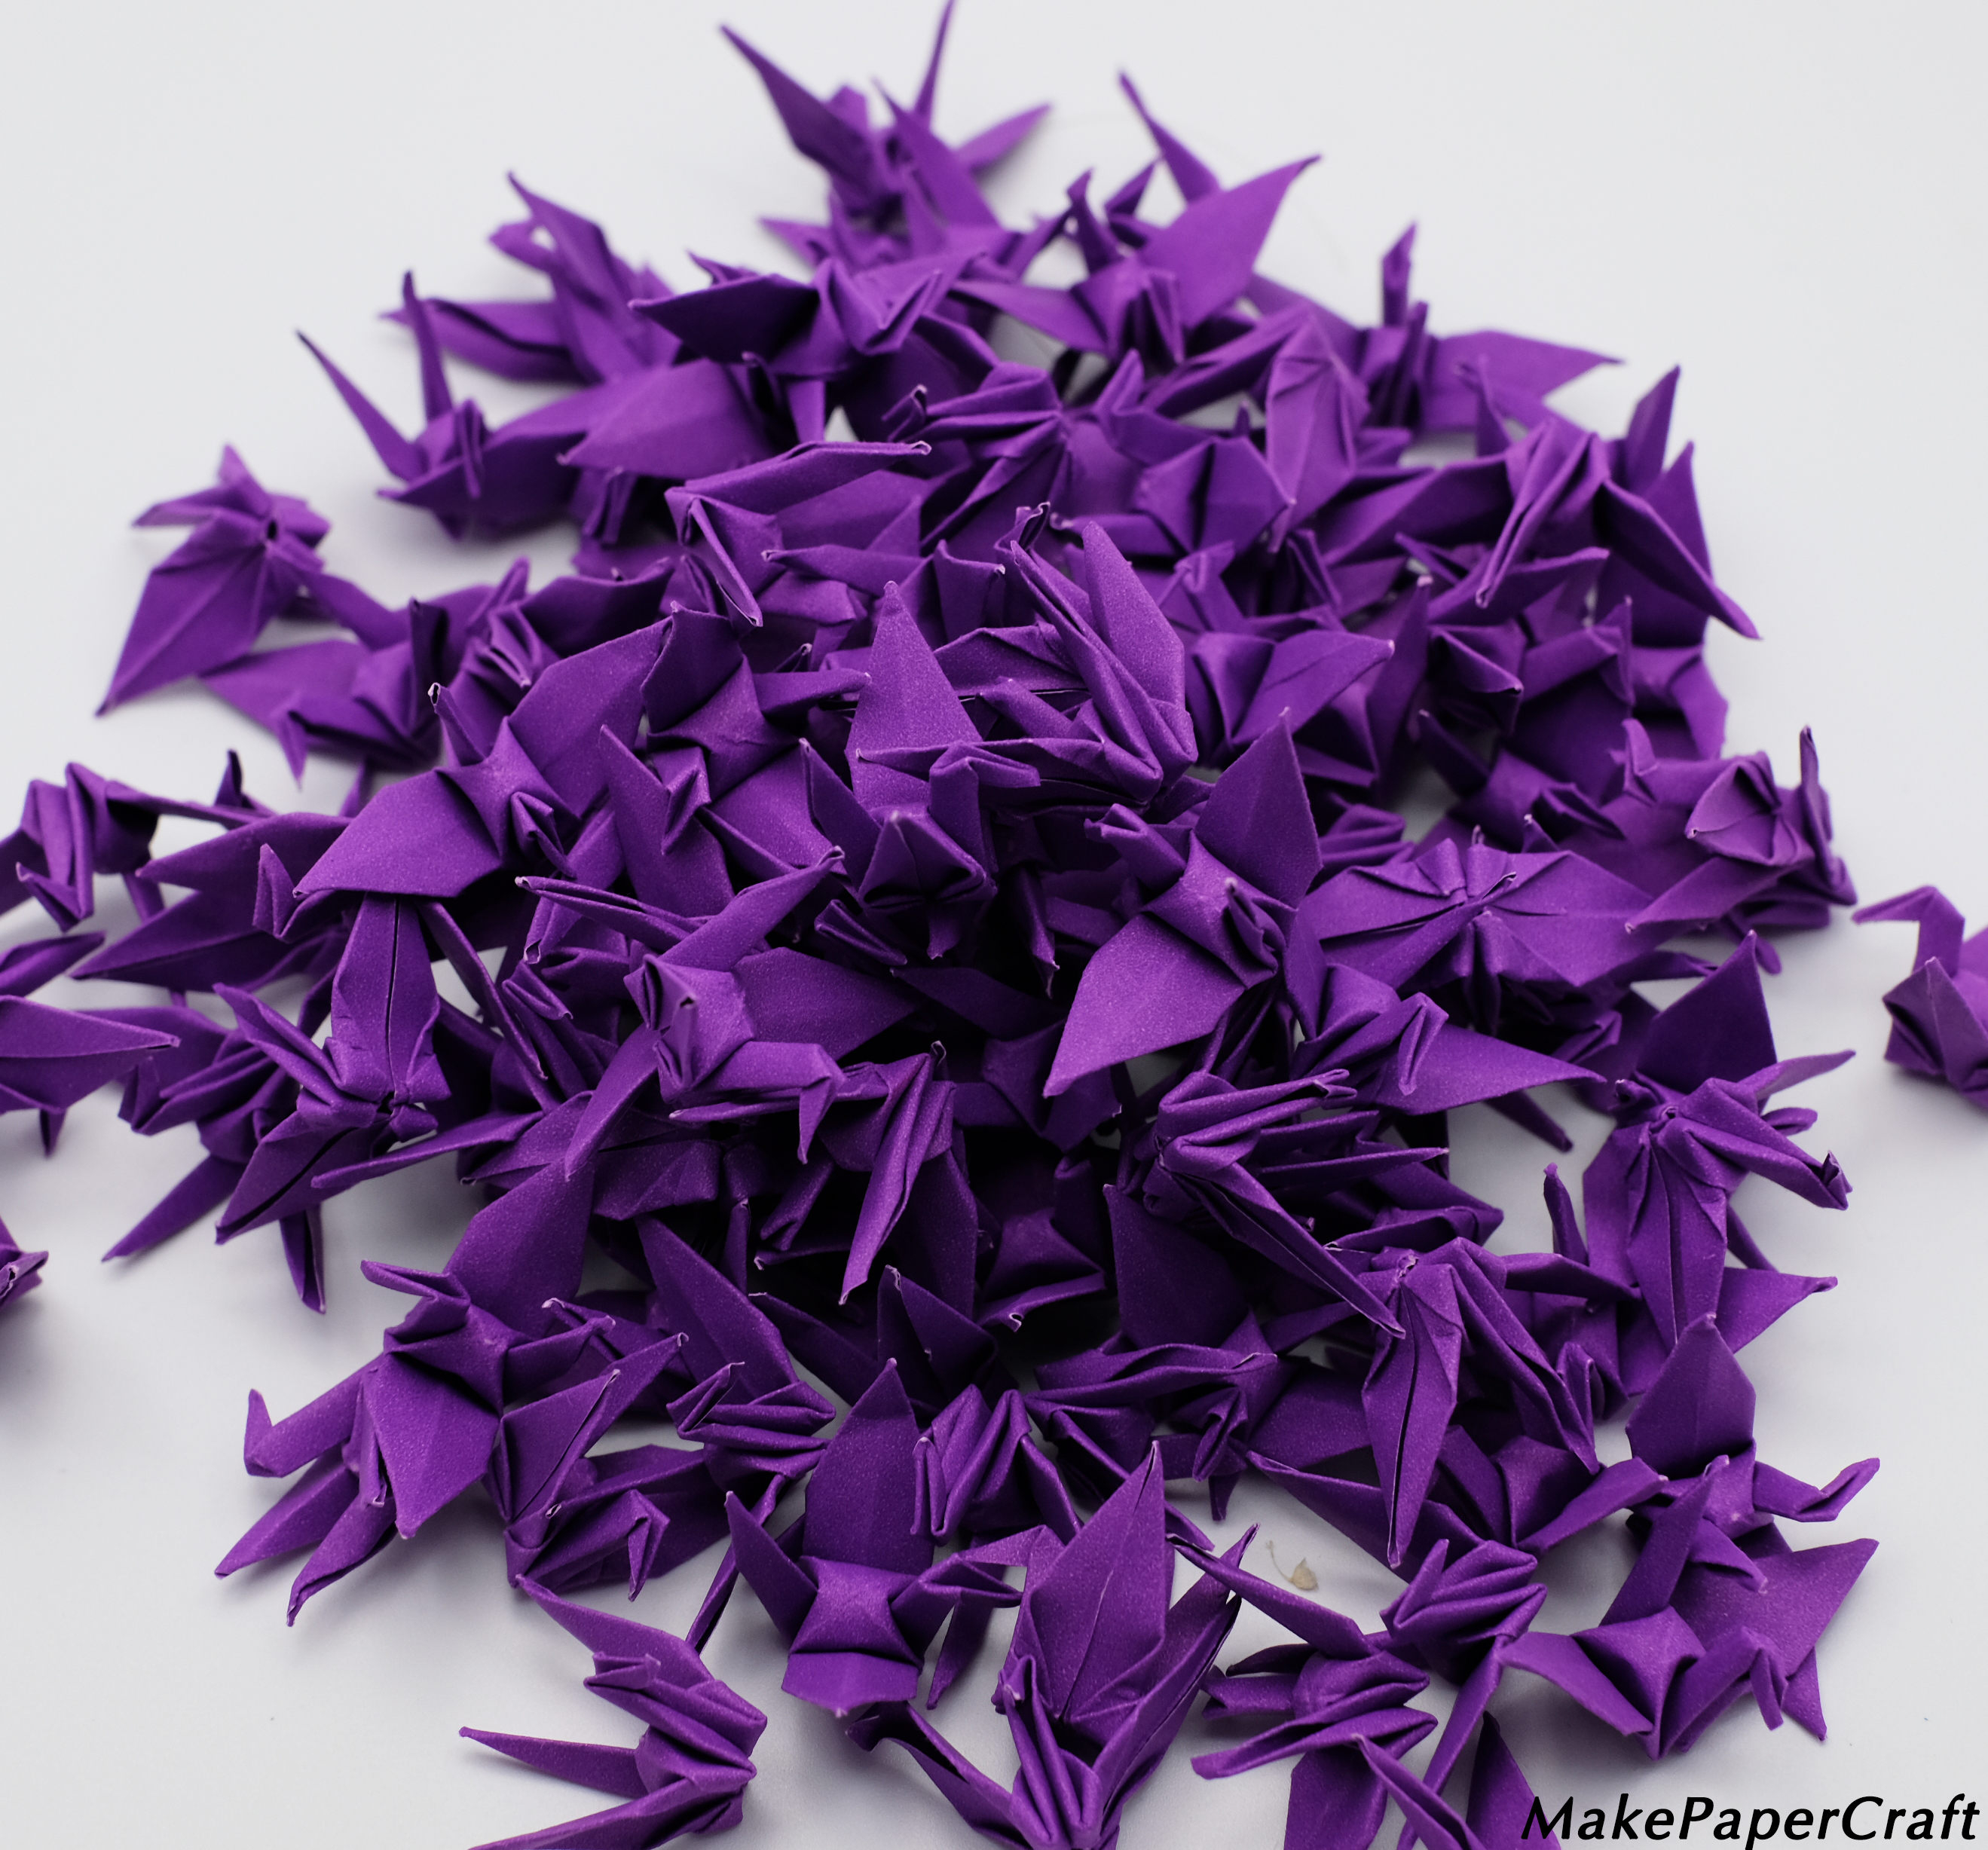 Origami Paper Images 1000 Origami Paper Cranes 15 Dark Purple Origami Cranes Paper Crane For Wedding Gift Decorate Backdrop Weddingorigamipolly